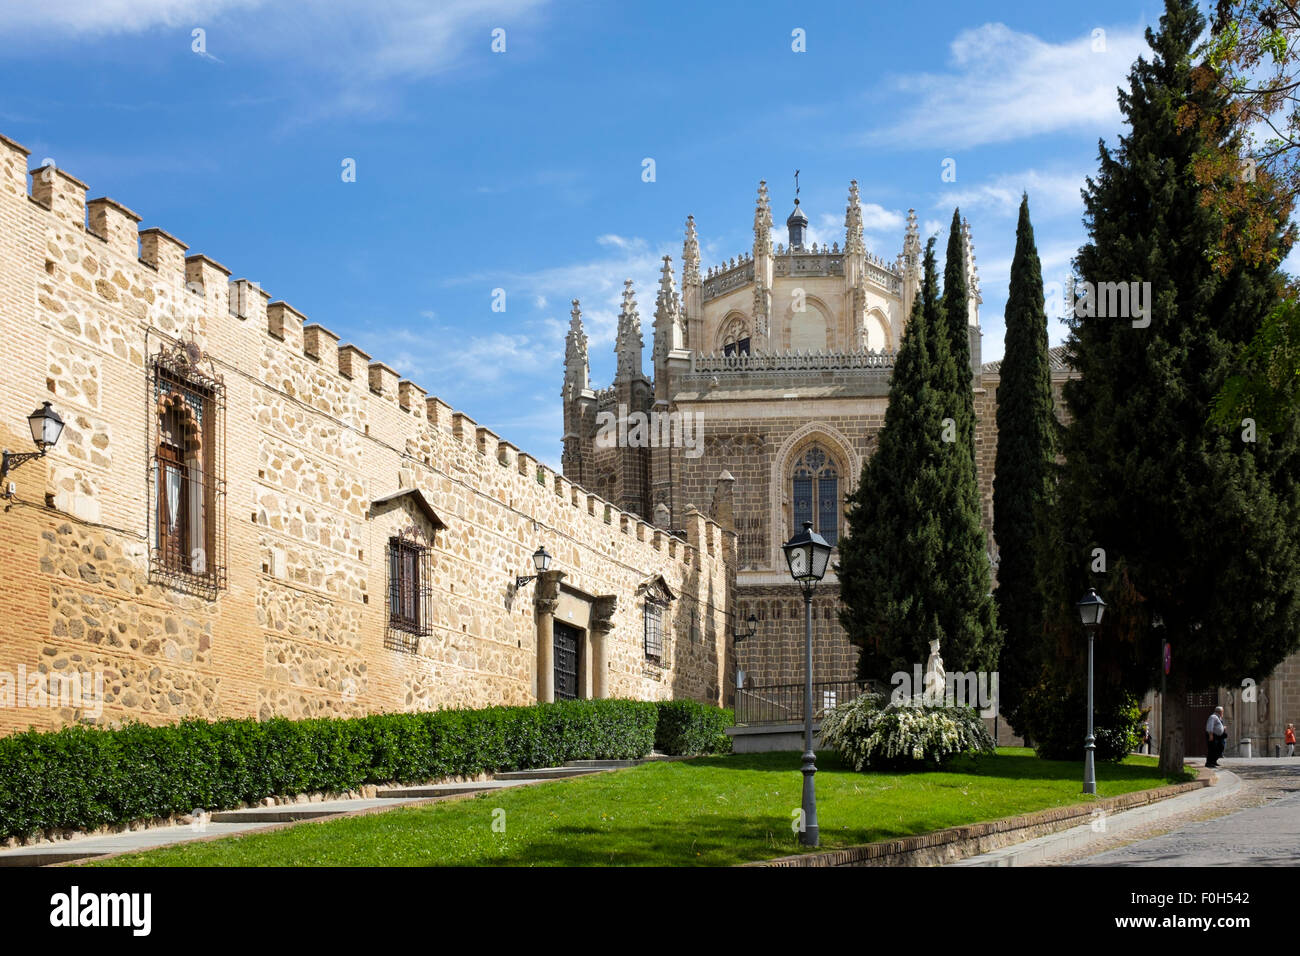 Exterior view of the Monastery of  San Juan de los Reyes, Toledo, Spain. - Stock Image